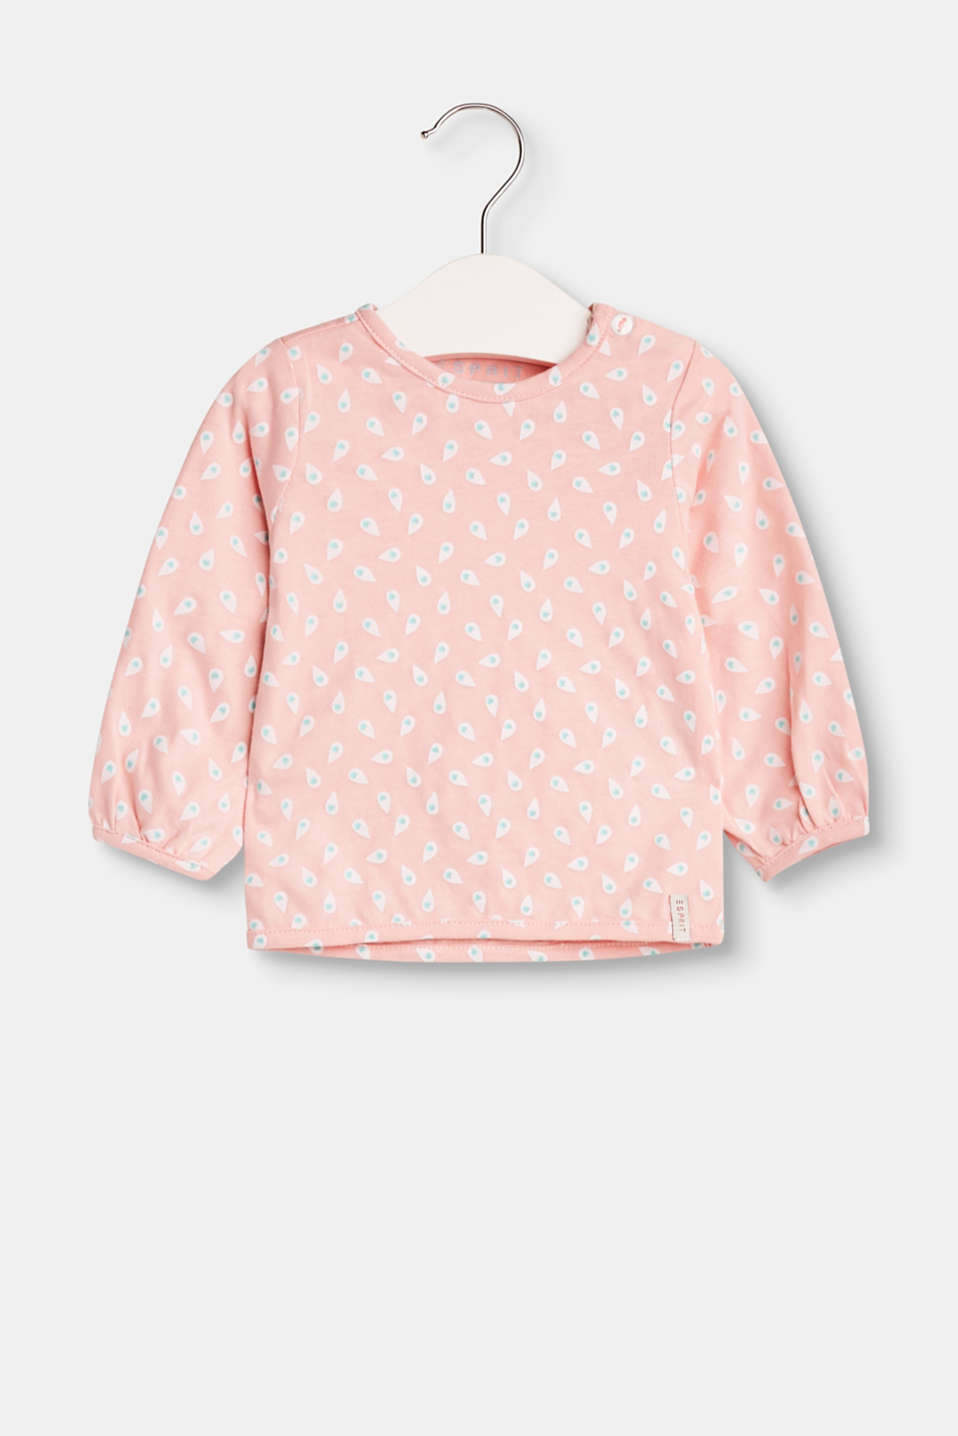 This cotton long sleeve top with high-quality organic cotton and a pretty print is super cute and comfortable.